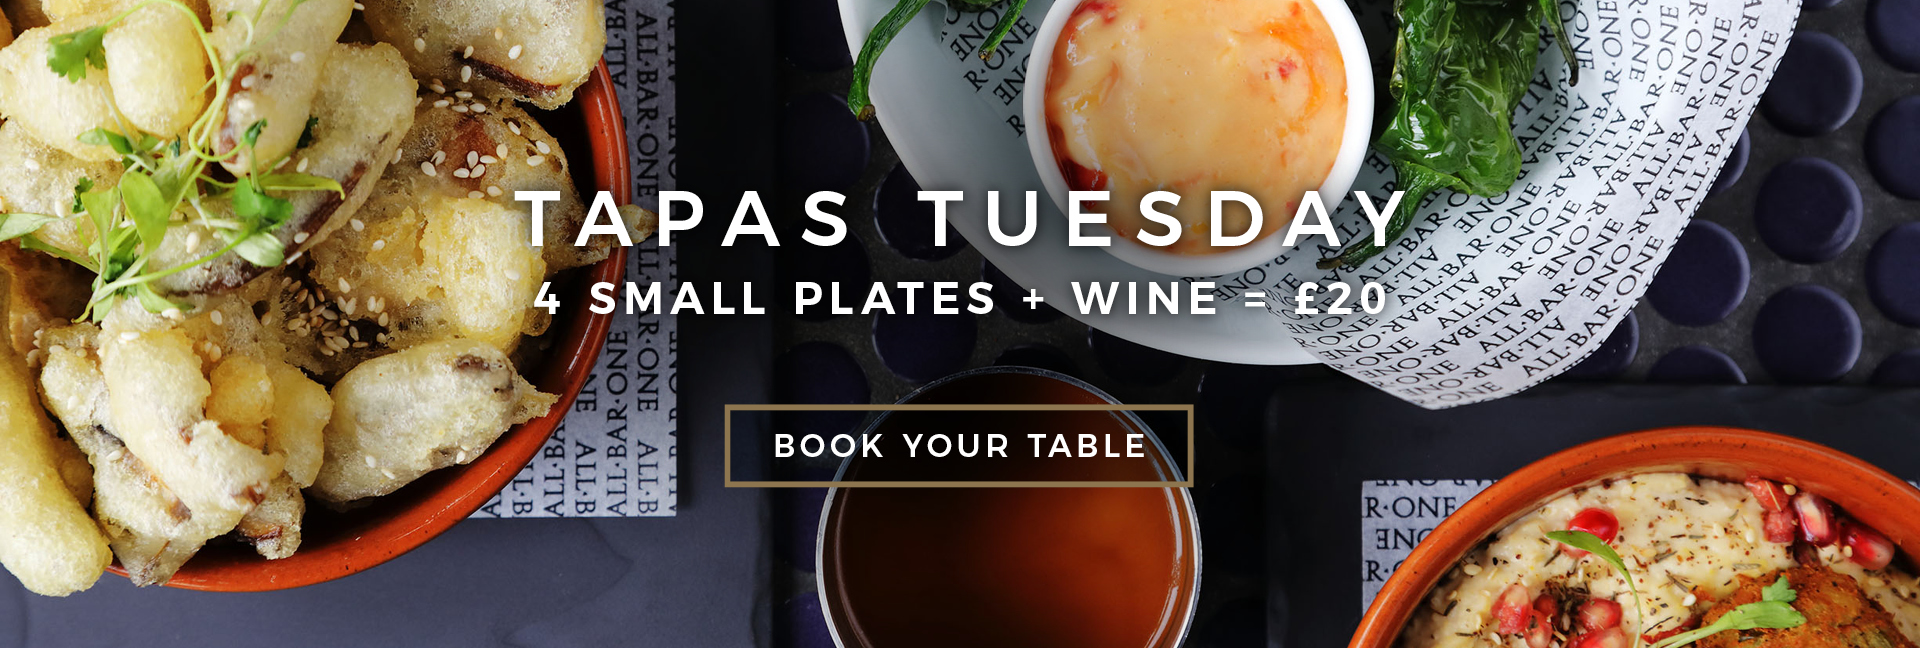 Tapas Tuesday at All Bar One Bishopsgate - Book now